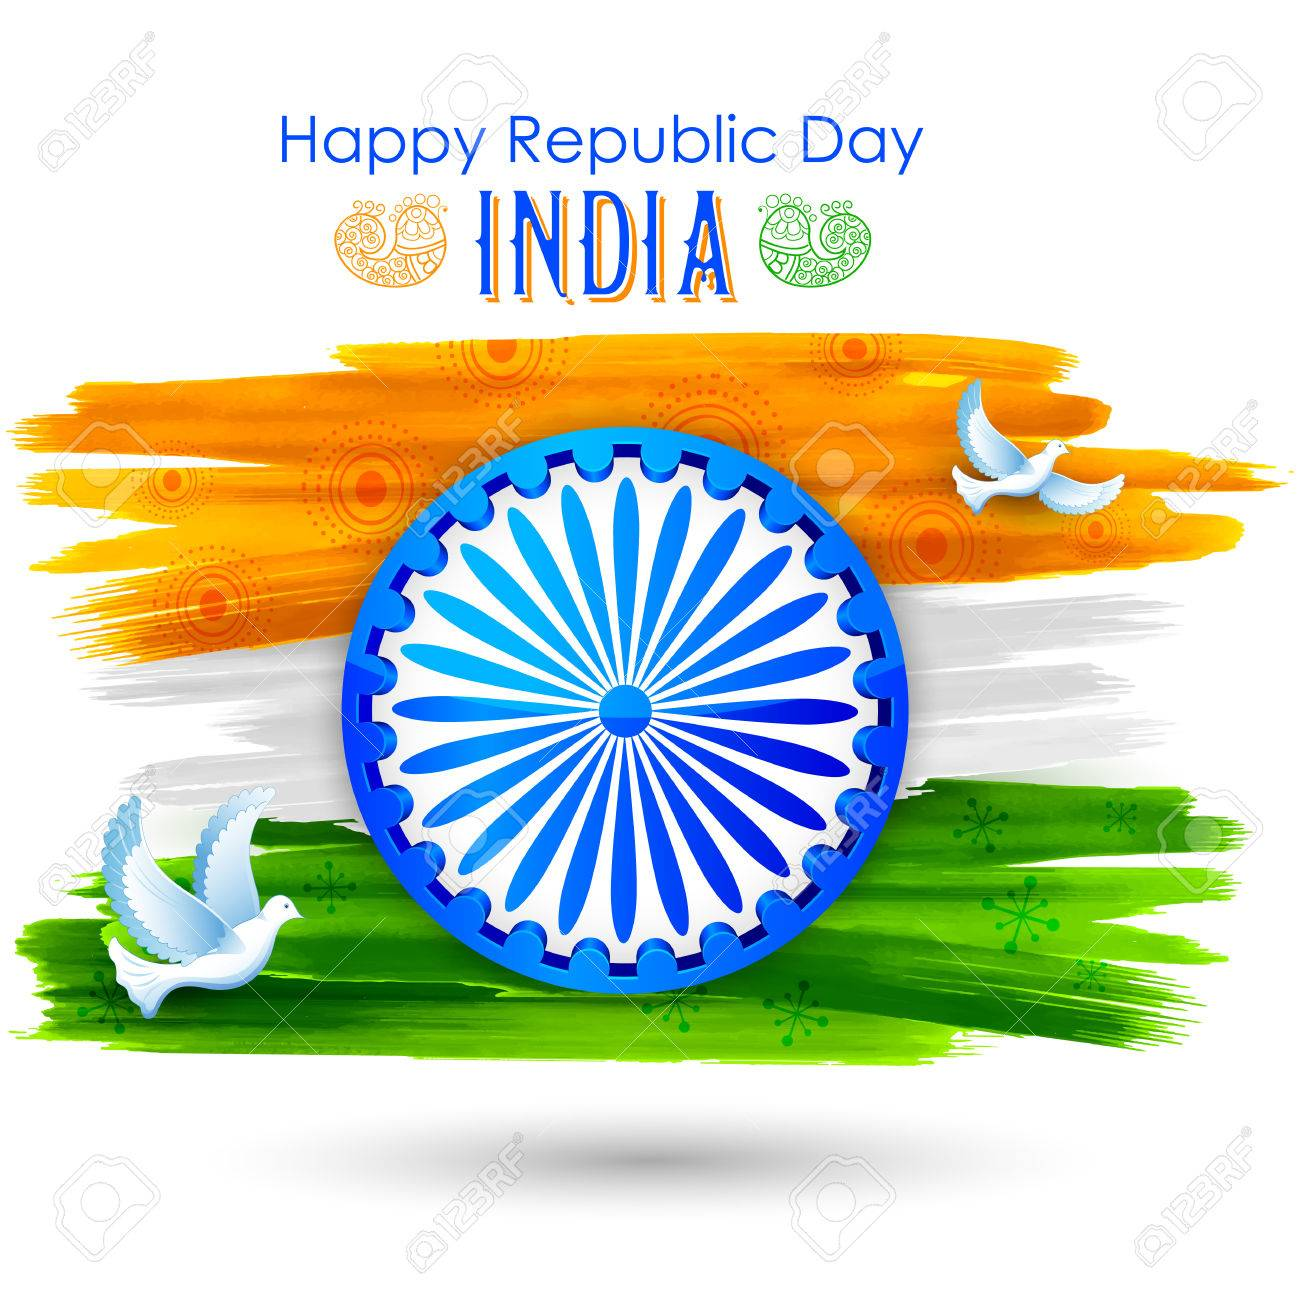 Dove flying with Indian tricolor flag showing peace - 69256983